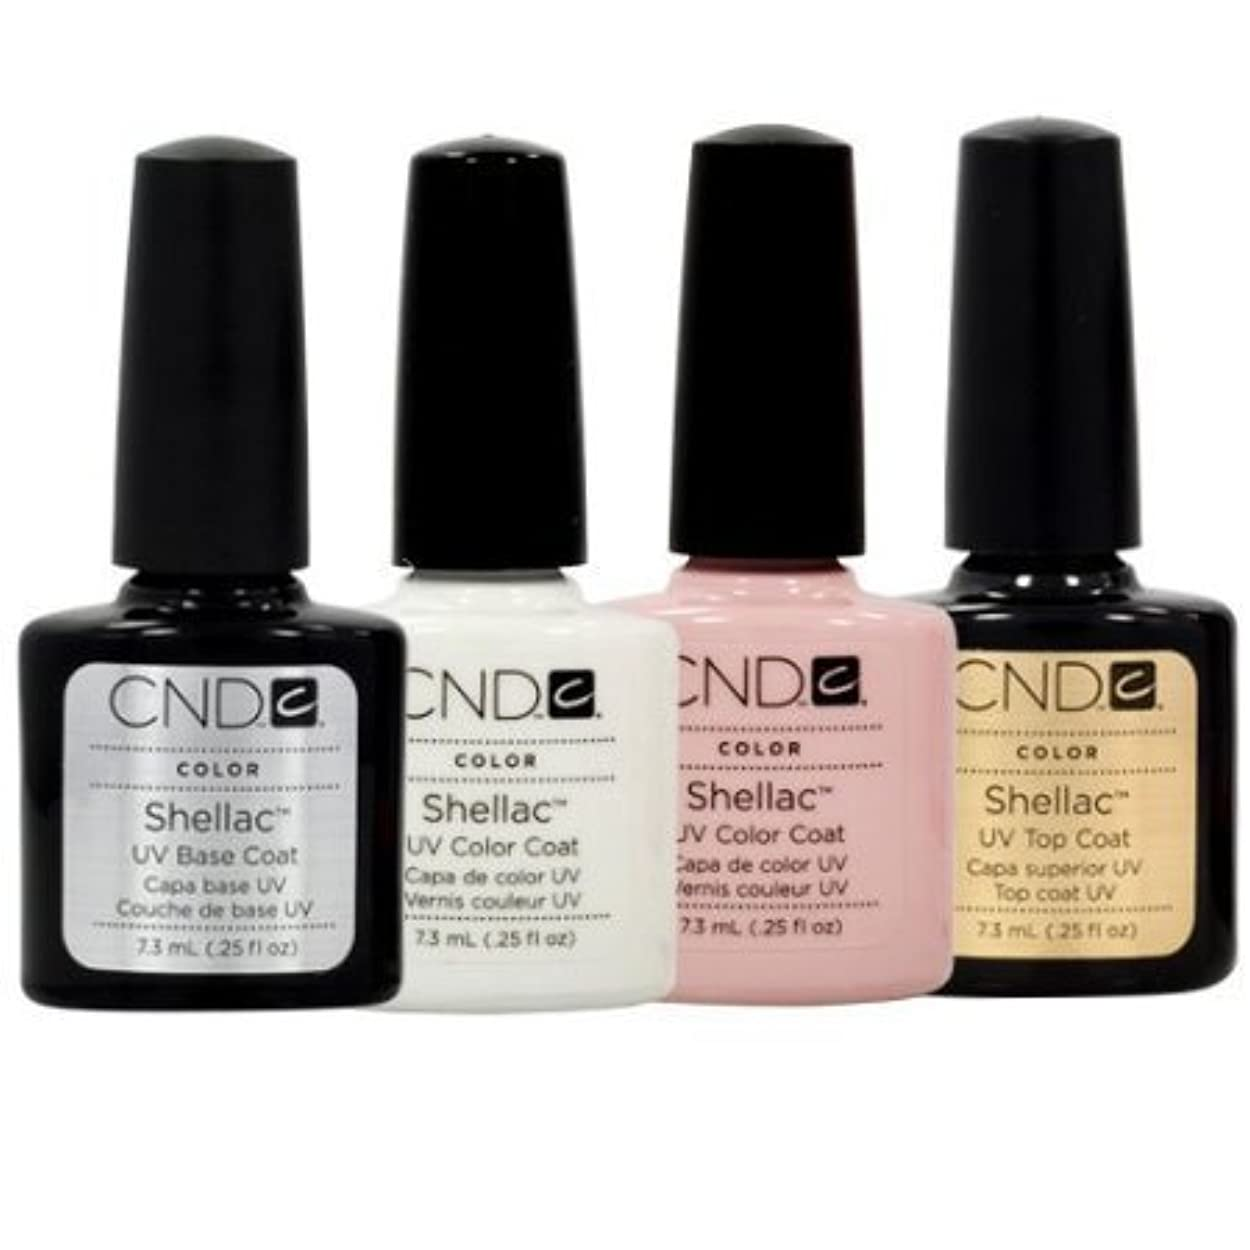 安全先に肺炎CND Shellac French Manicure Kit Base Top Coat Color White Pink Nail Polish Gel by CND - Creative Nail Design [...